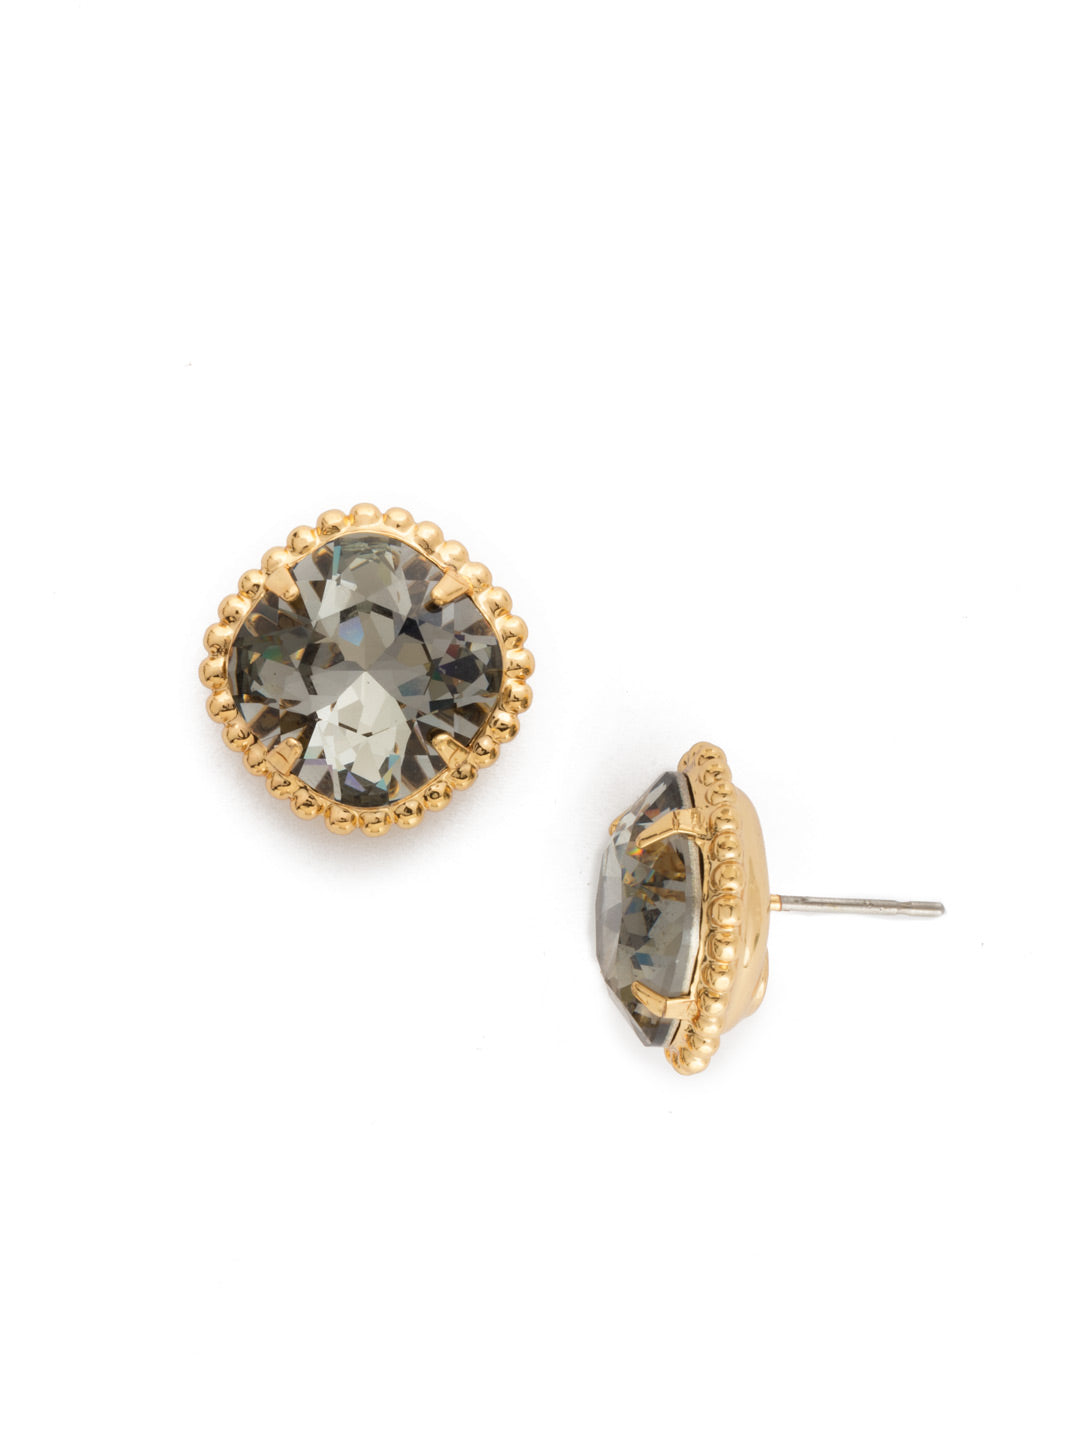 Cushion-Cut Solitaire Stud Earrings - EBX10BGBD